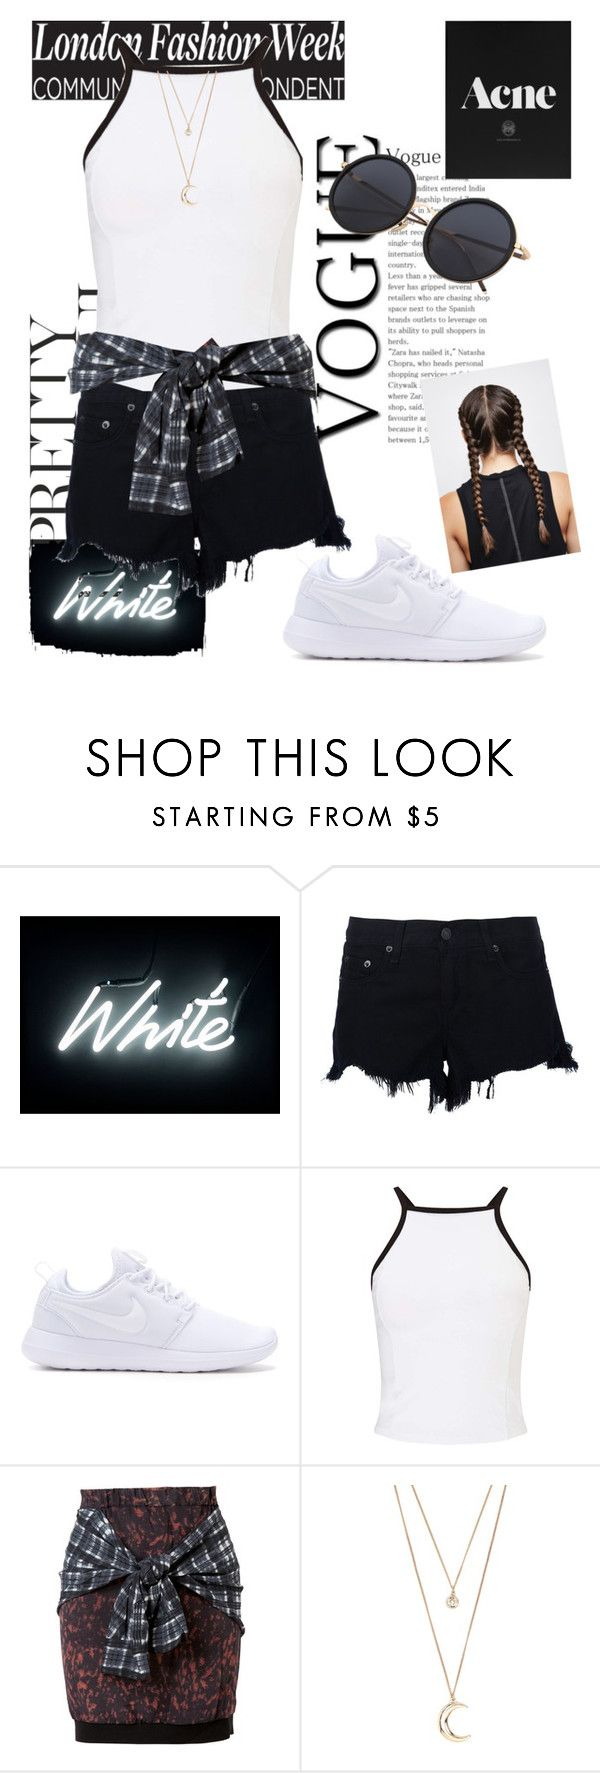 """""""Join my group: http://www.polyvore.com/cgi/group.show?id=208673"""" by valerieetorres ❤ liked on Polyvore featuring Seletti, rag & bone, NIKE, Miss Selfridge, 3.1 Phillip Lim and Forever 21"""